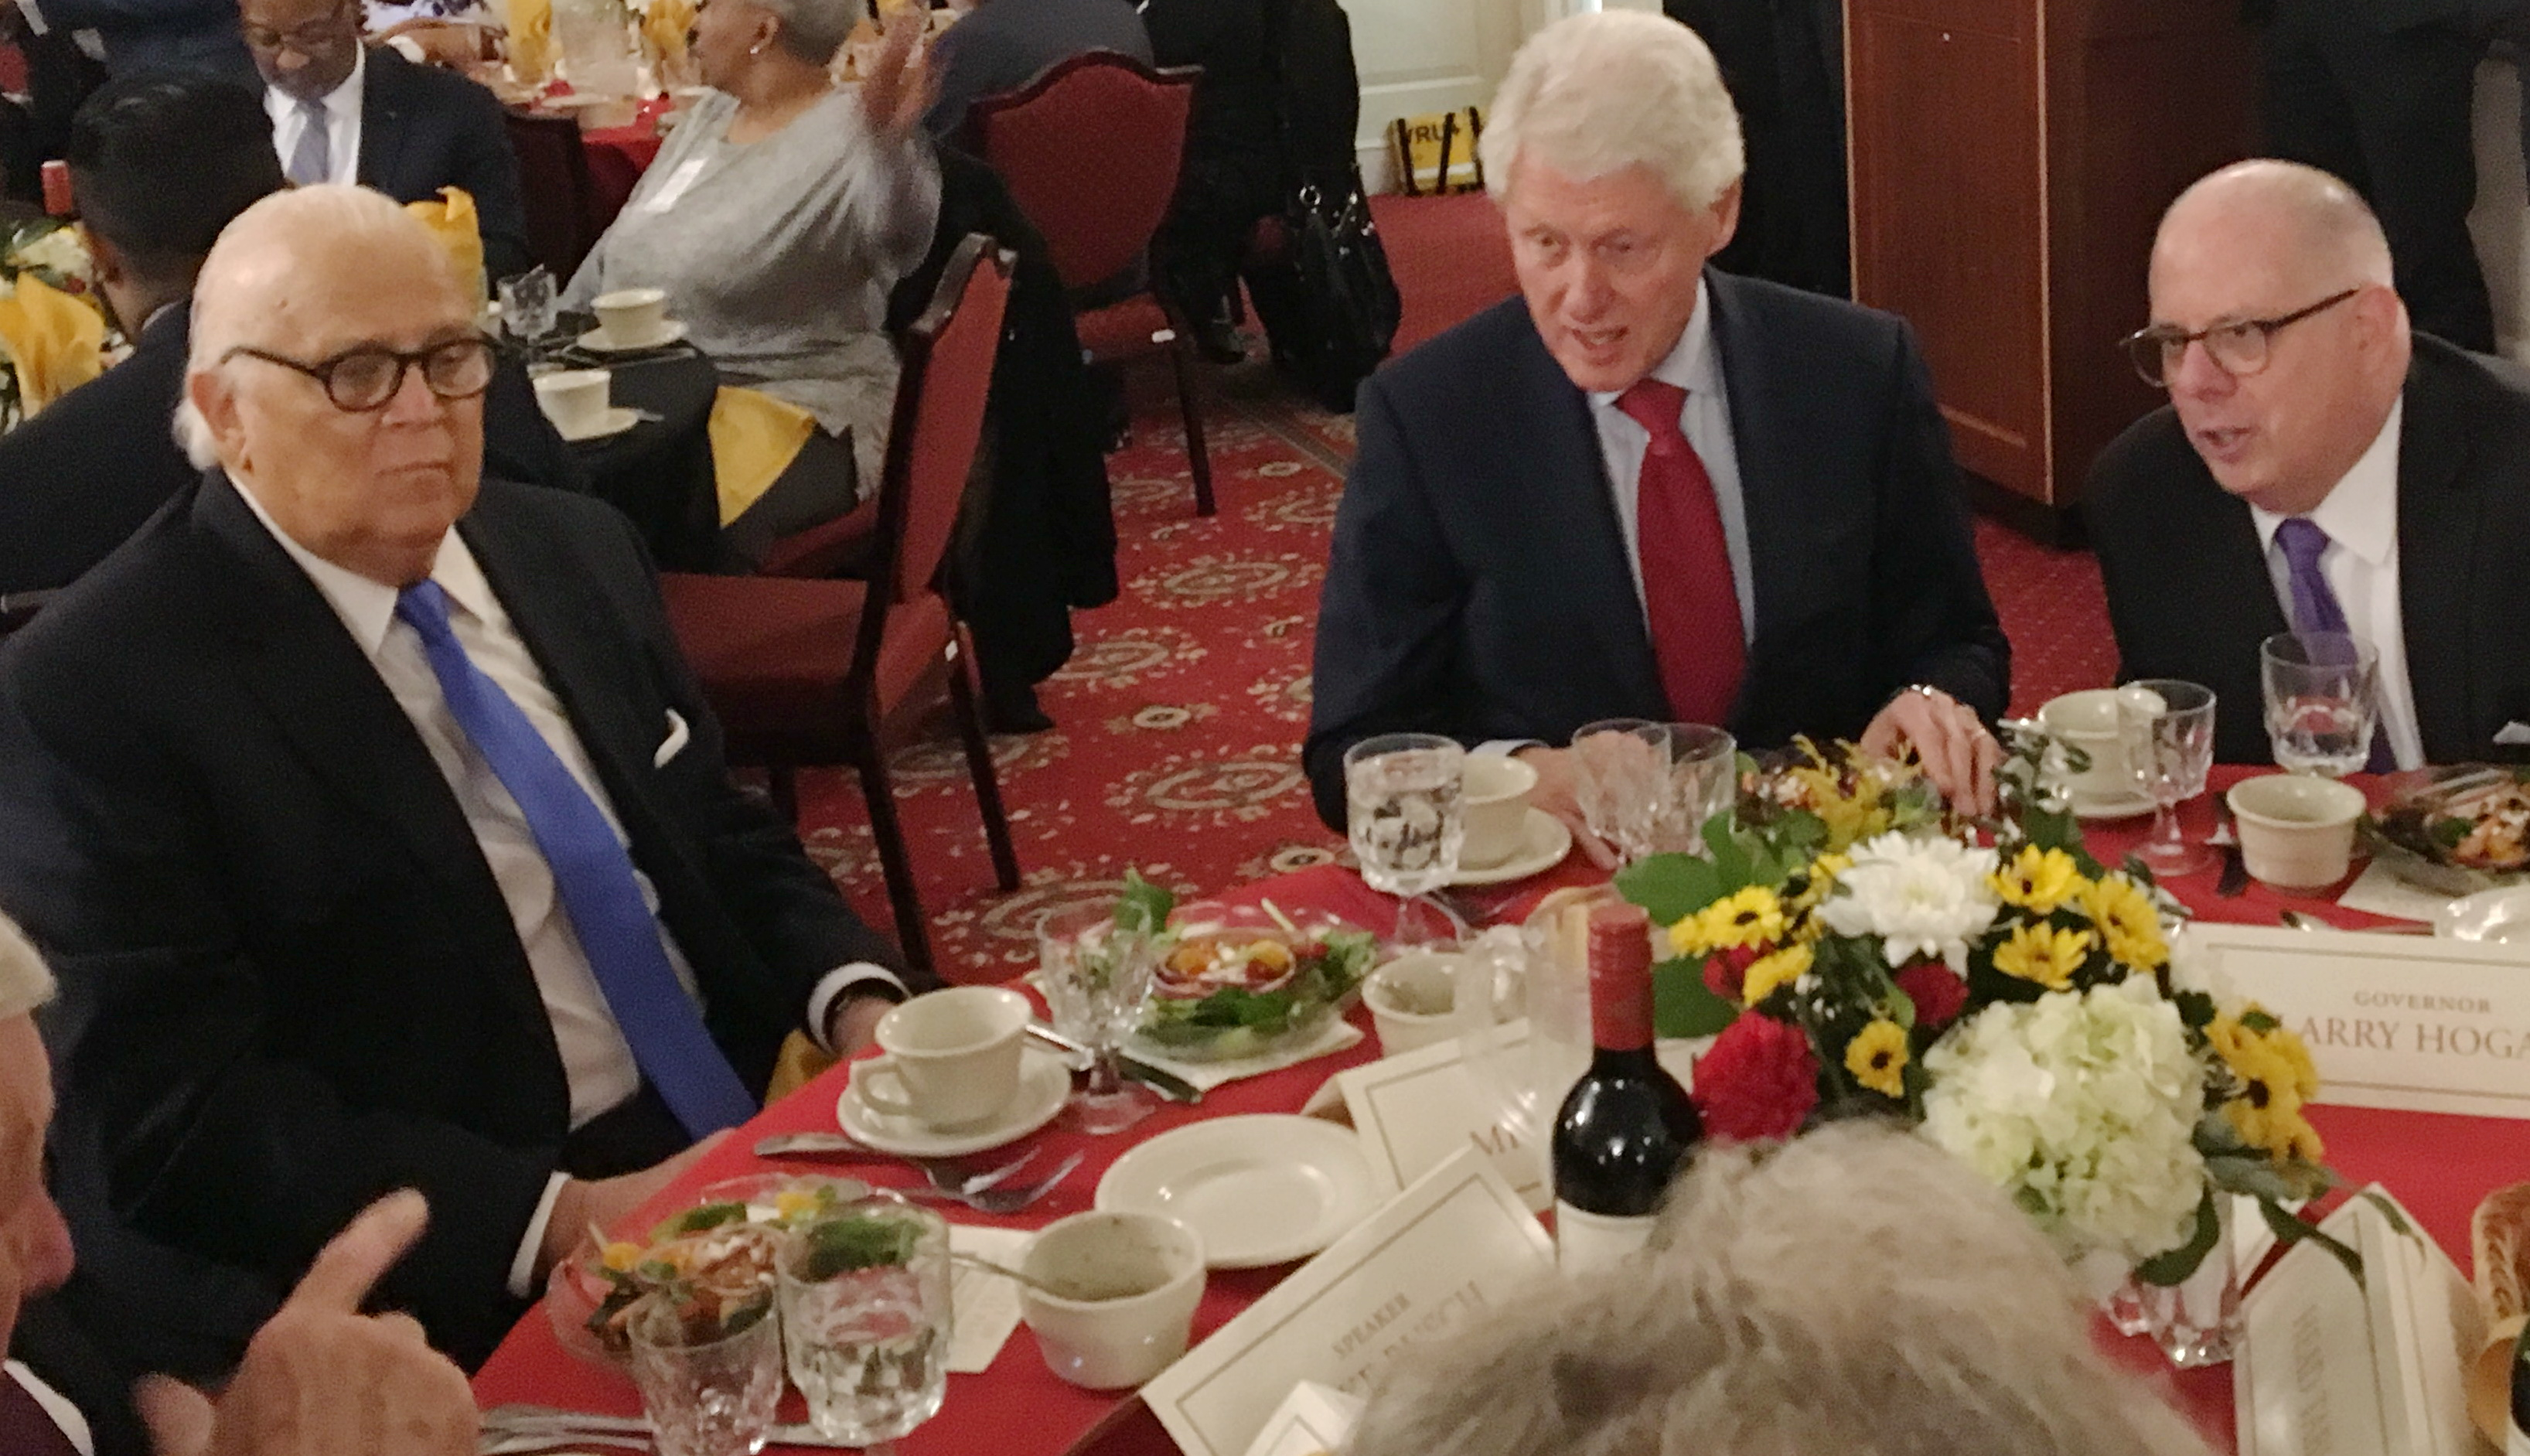 Bill Clinton celebrates Mike Miller